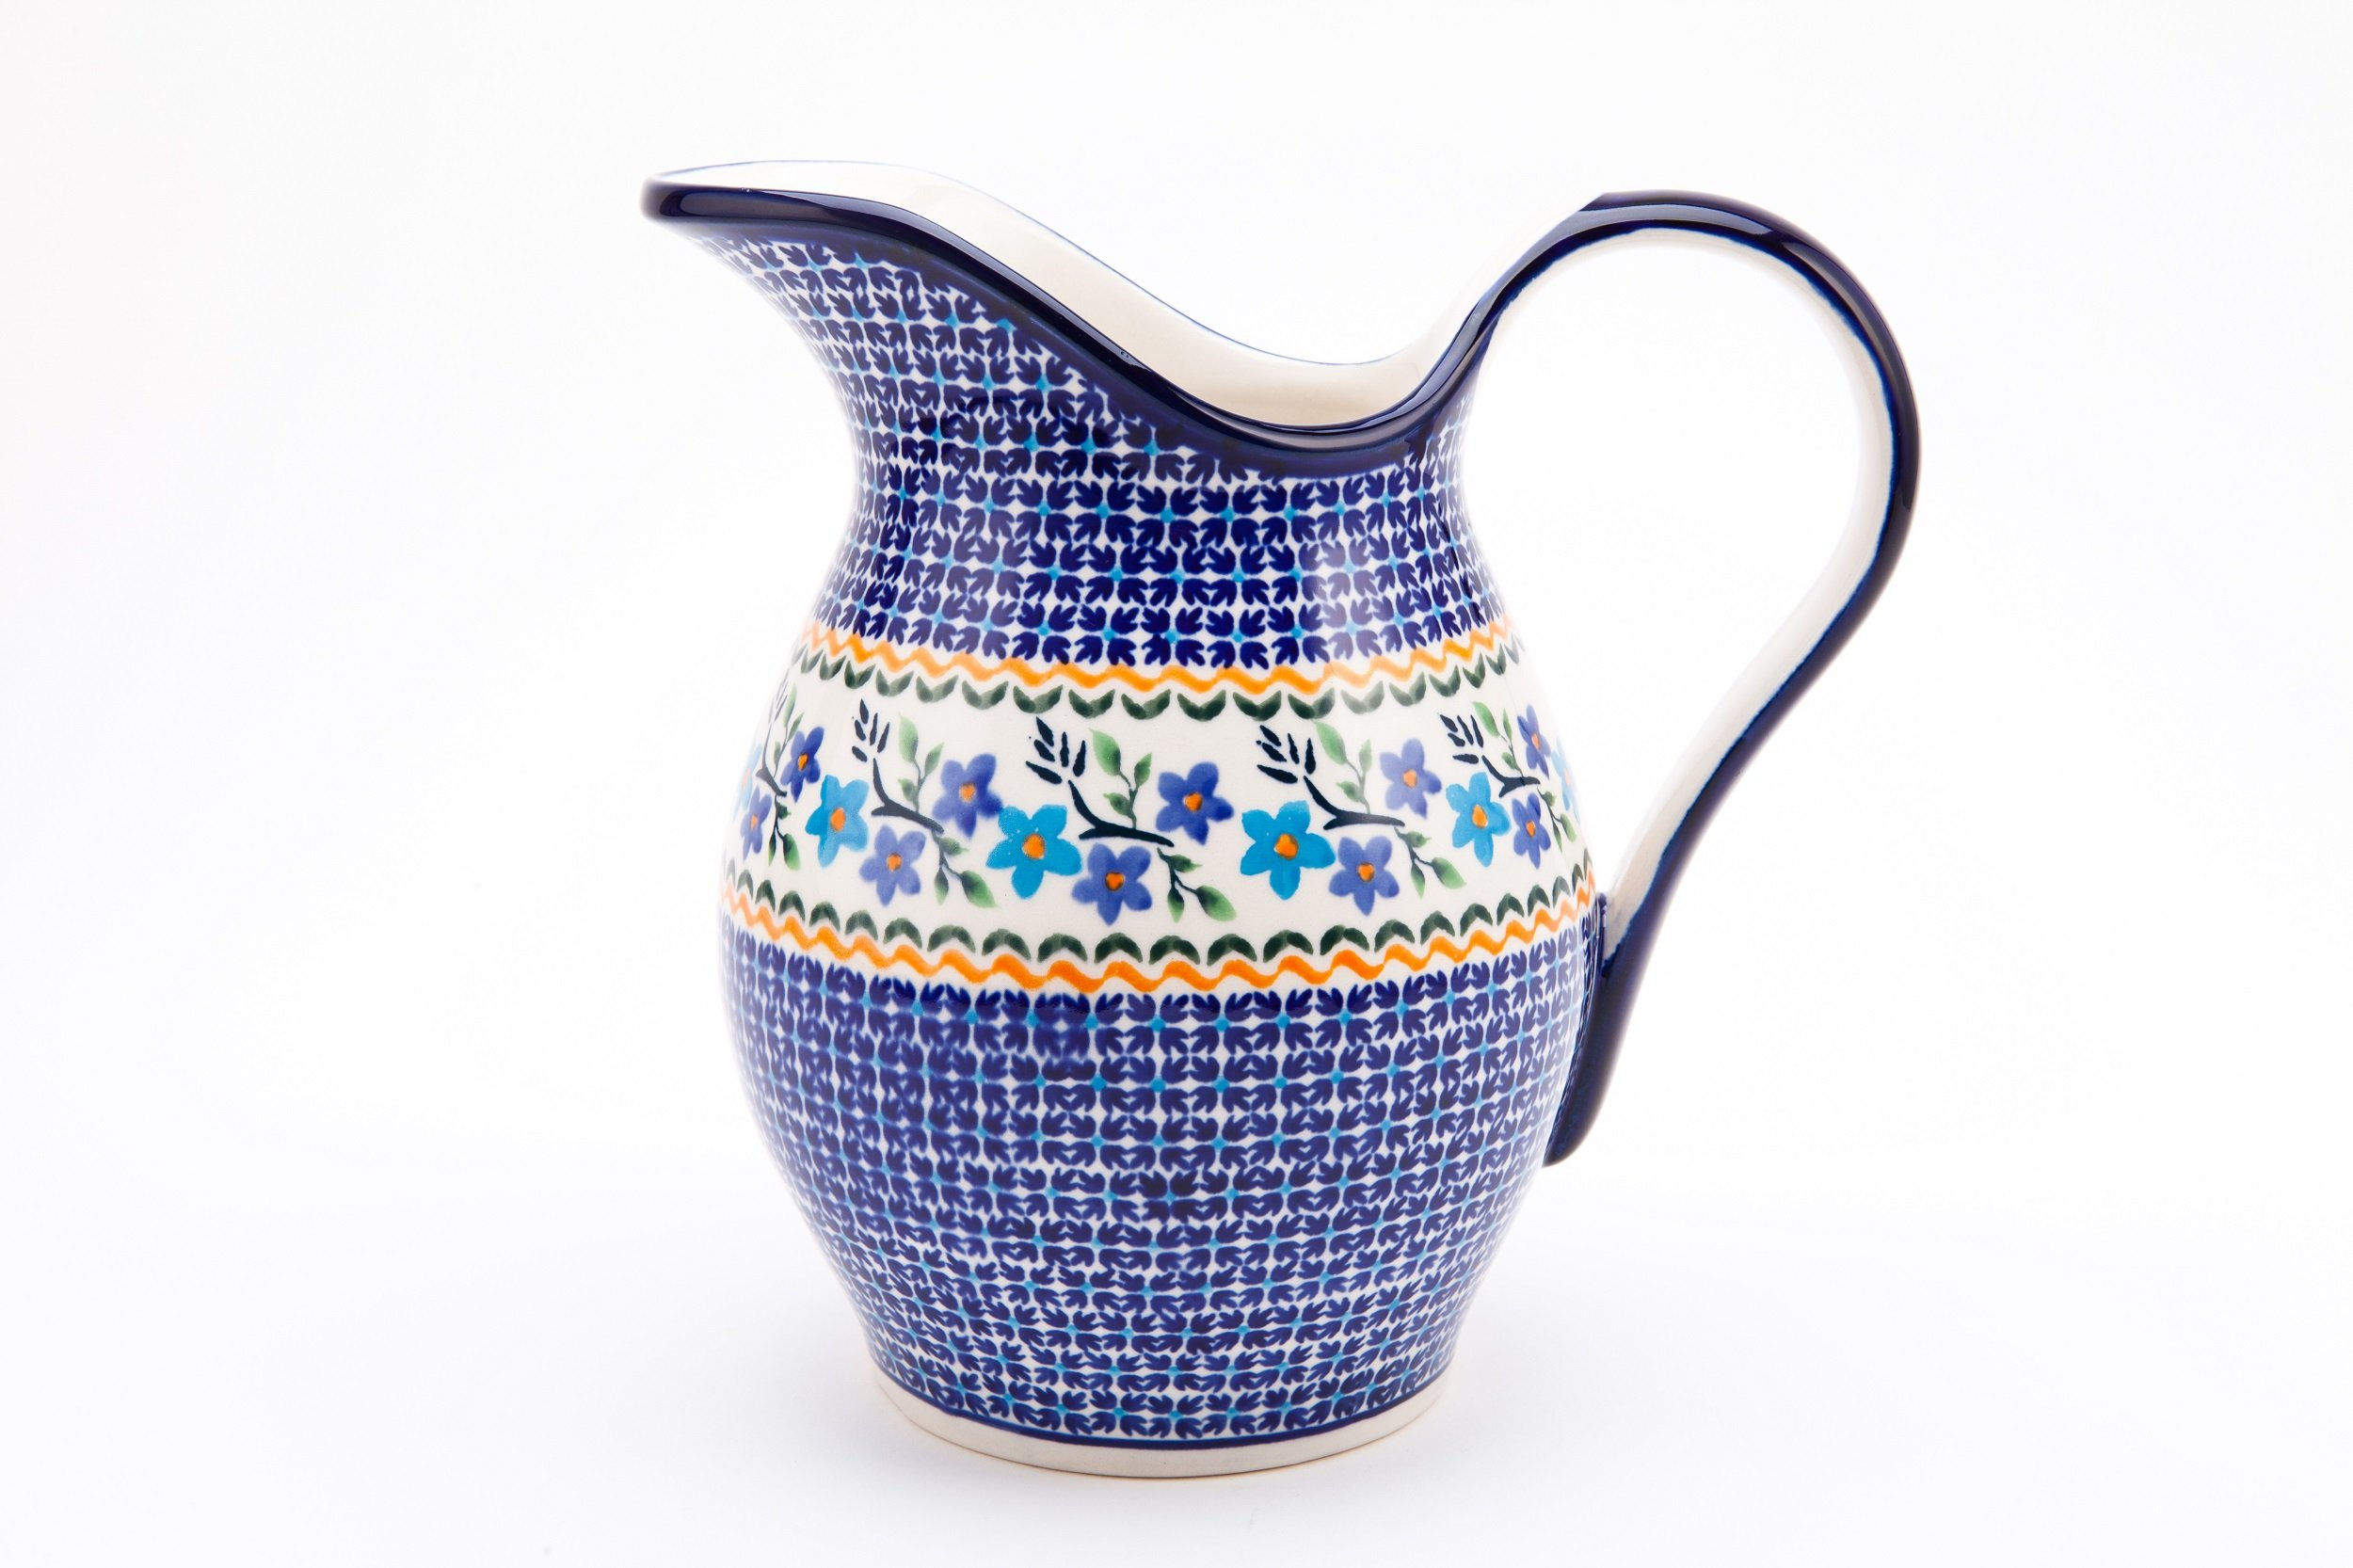 Hand-Decorated Polish Pottery Carafe/Pitcher/Jug 1.7Litre ø21,5xh21,0cm in our EXCLUSIVE DESIGN 1154A